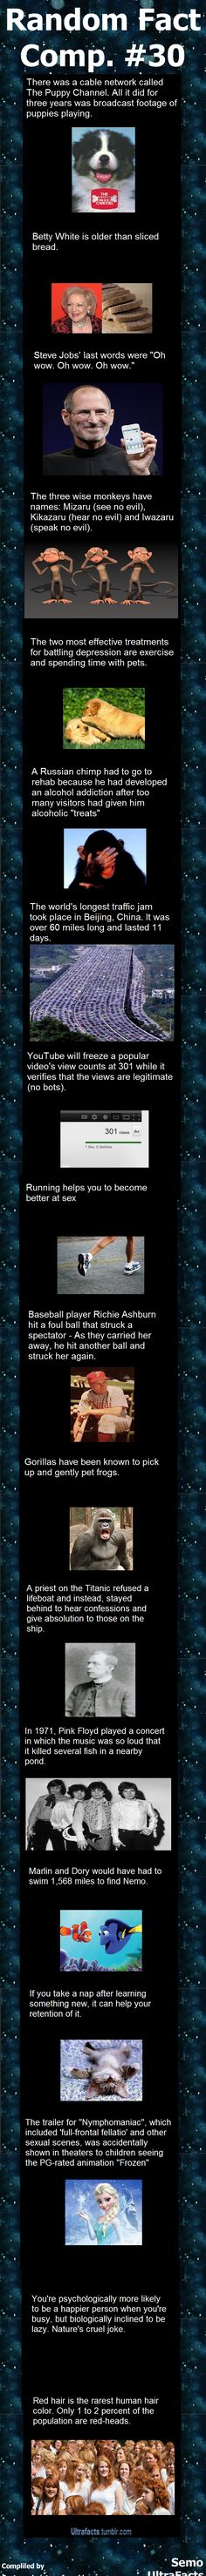 Random Fact Comp 30  // funny pictures - funny photos - funny images - funny pics - funny quotes - #lol #humor #funnypictures